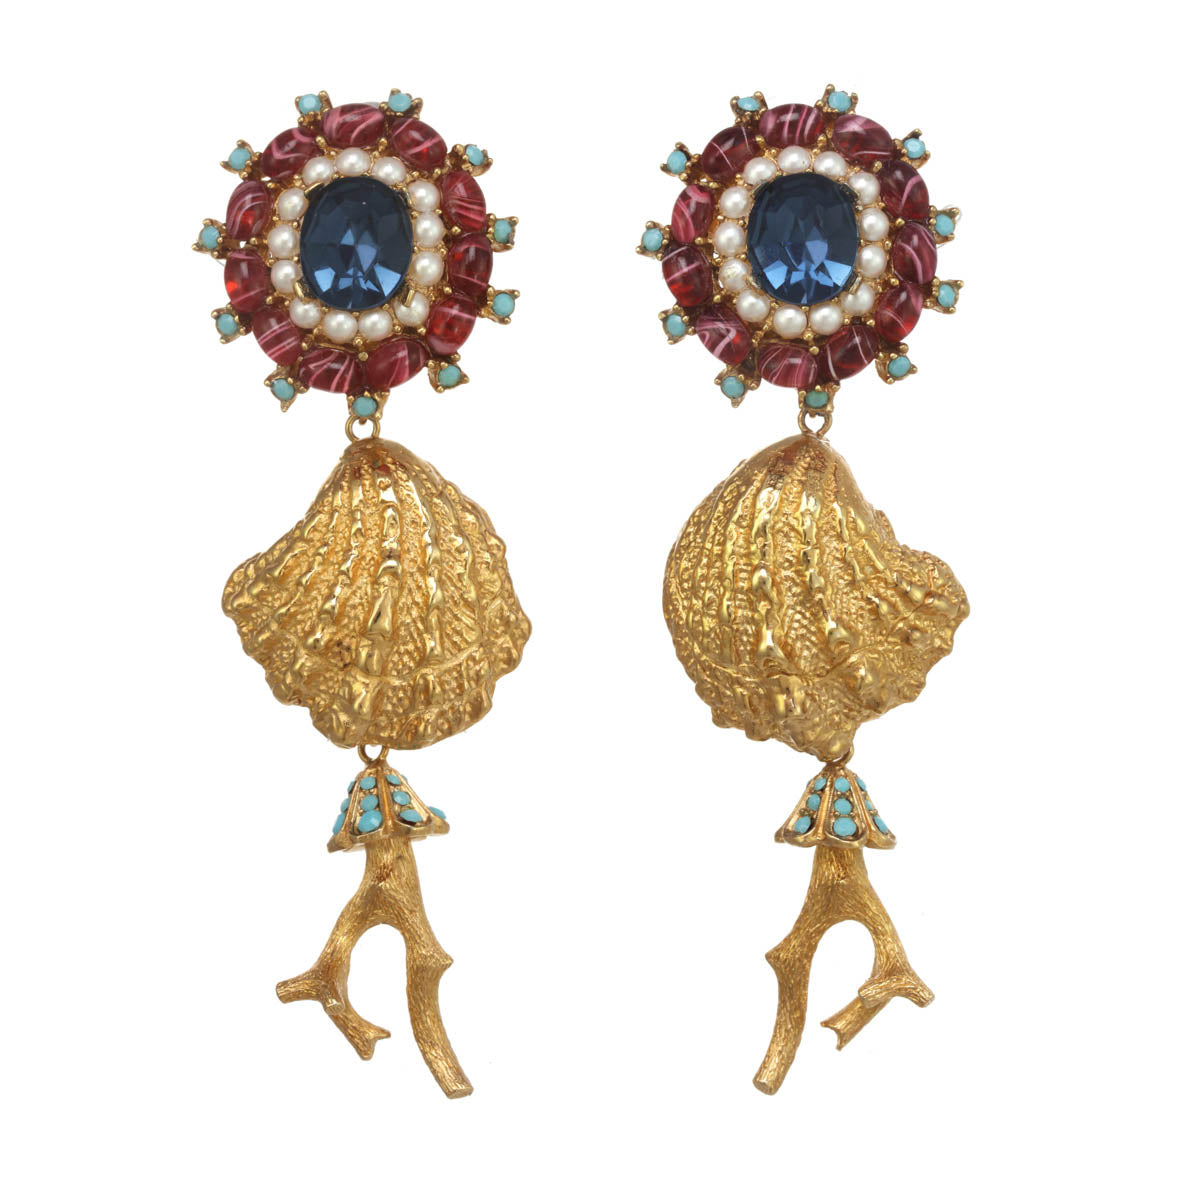 Coraline Statement Earrings Ciner Ny